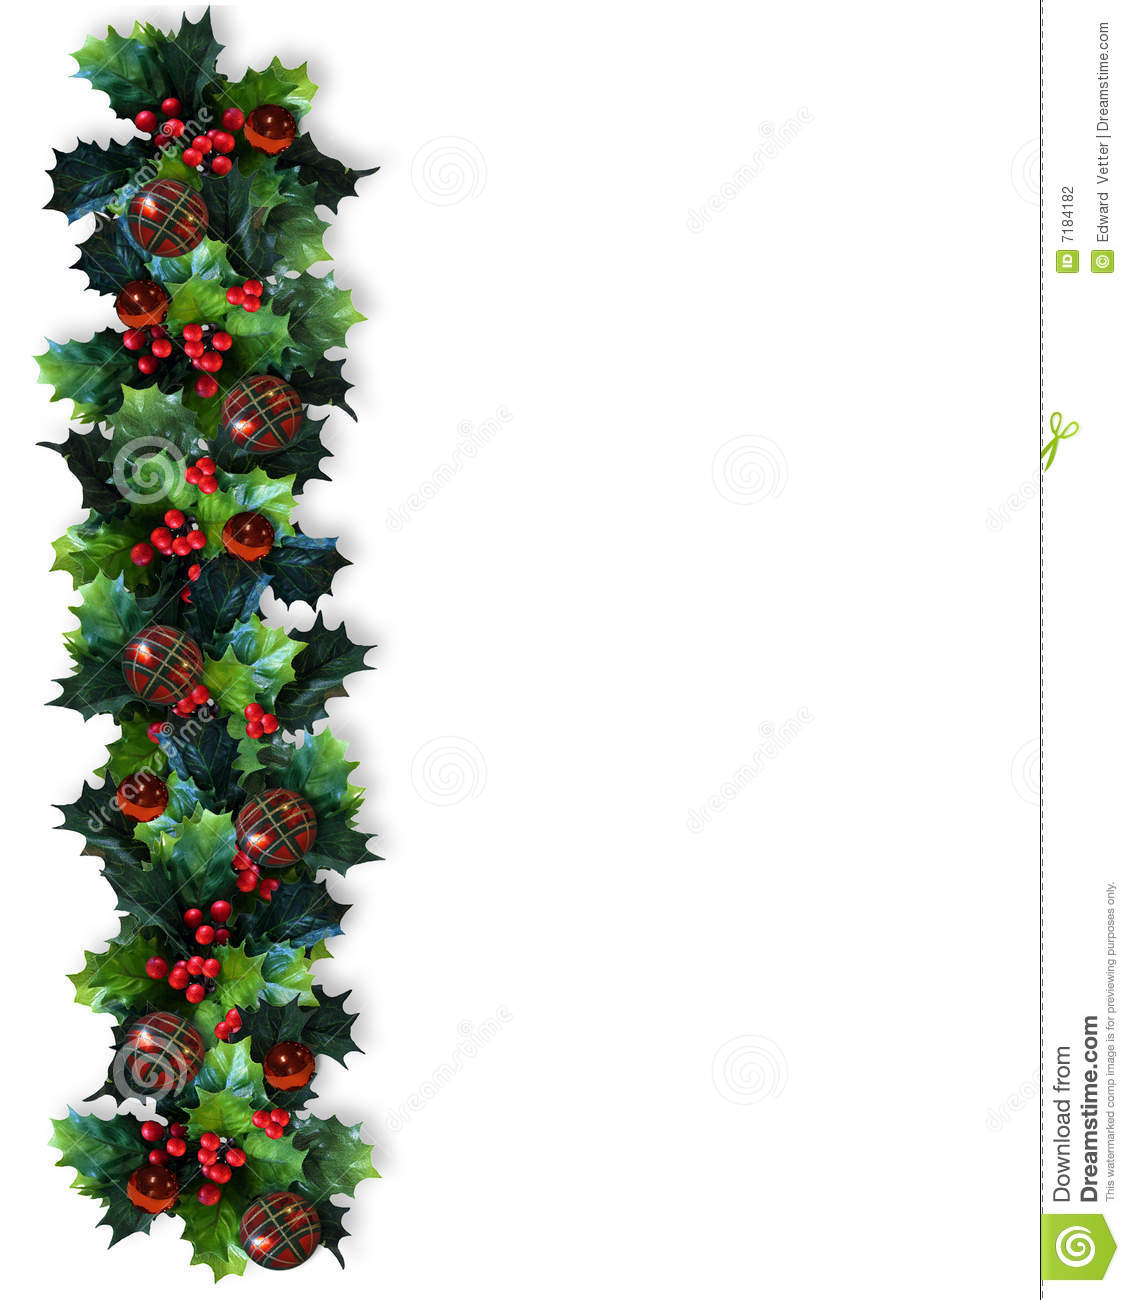 christmas border holly garland stock illustration. Black Bedroom Furniture Sets. Home Design Ideas